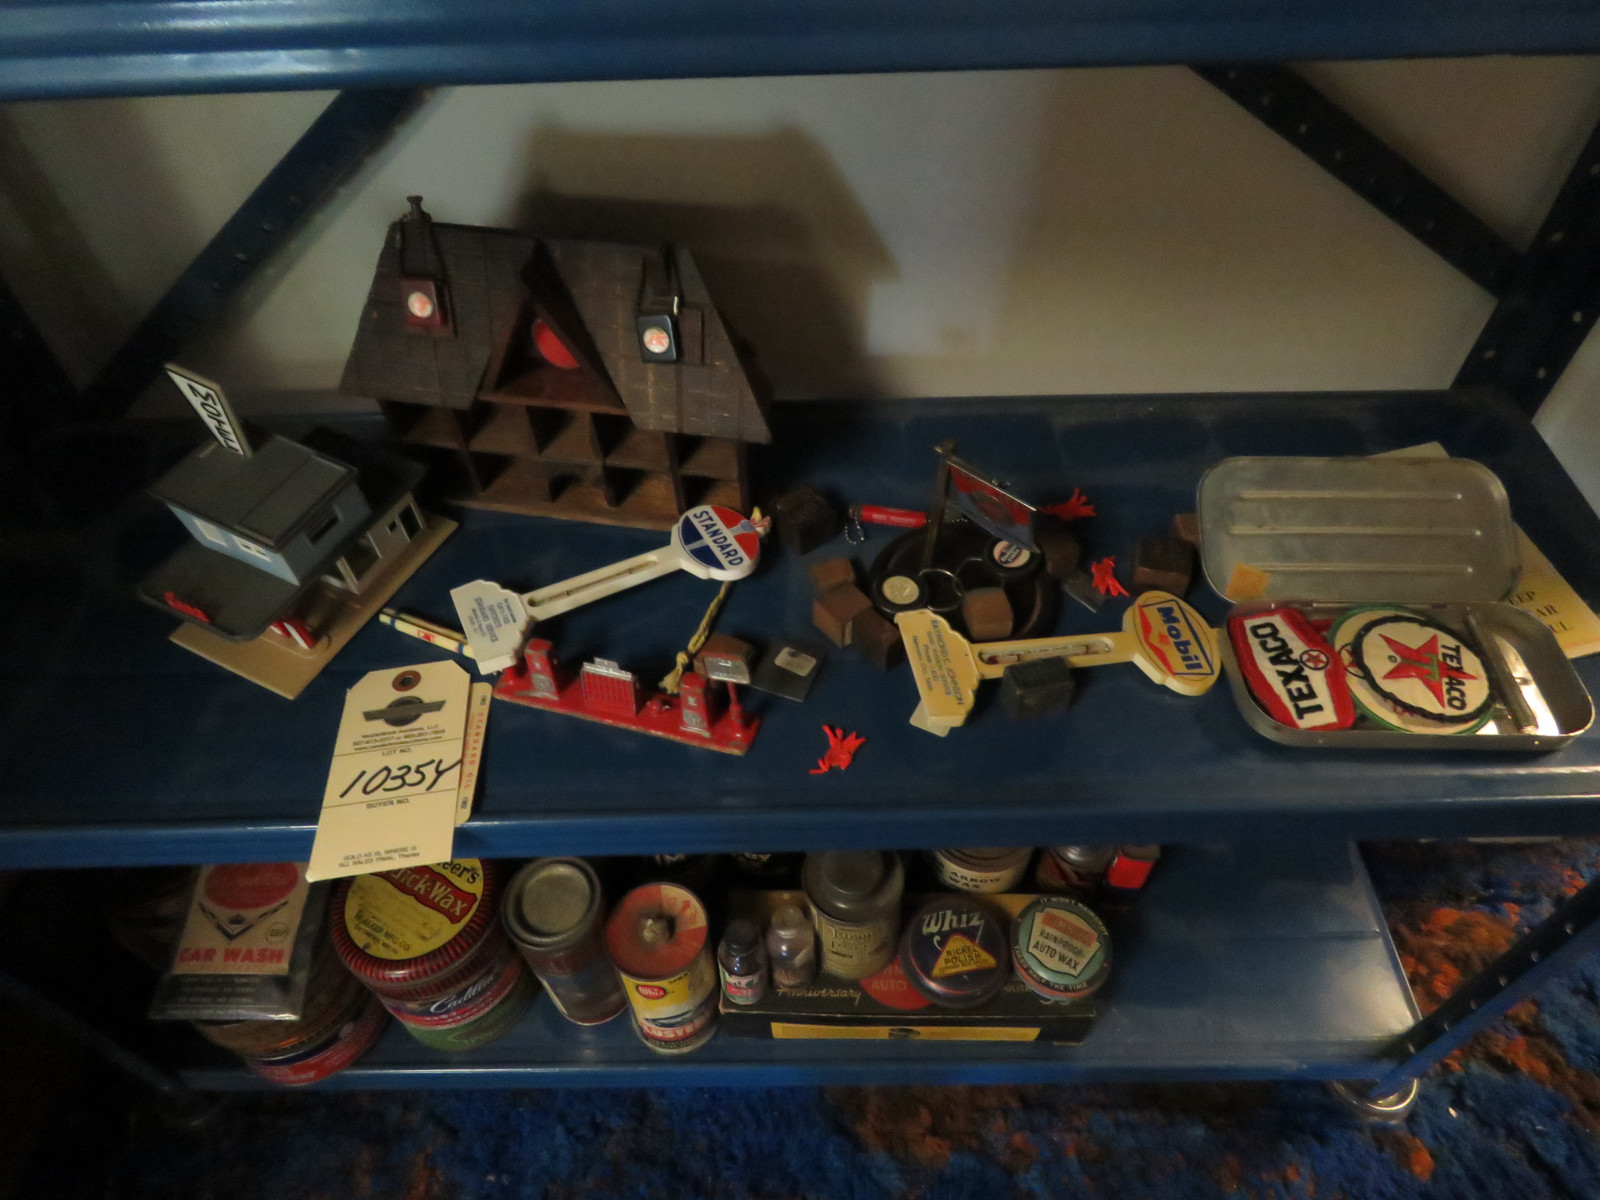 Vintage Texaco Model Gas Station Pieces and others - Image 1